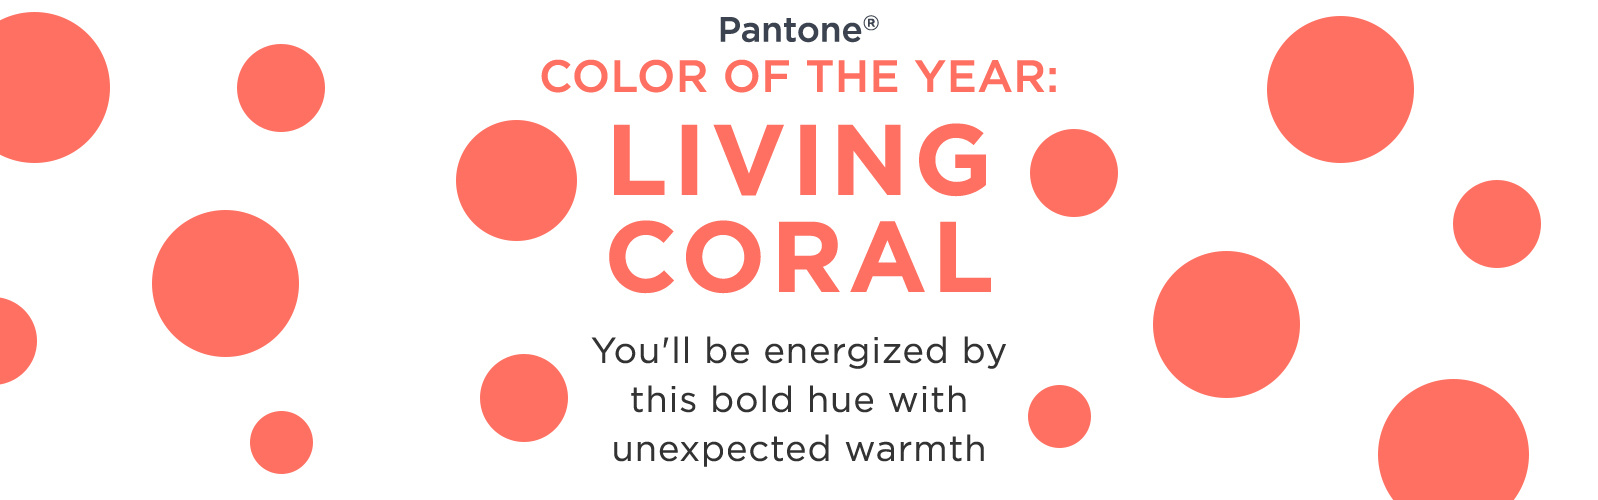 Pantone® - Color of the Year: Living Coral  You'll be energized by this bold hue with unexpected warmth